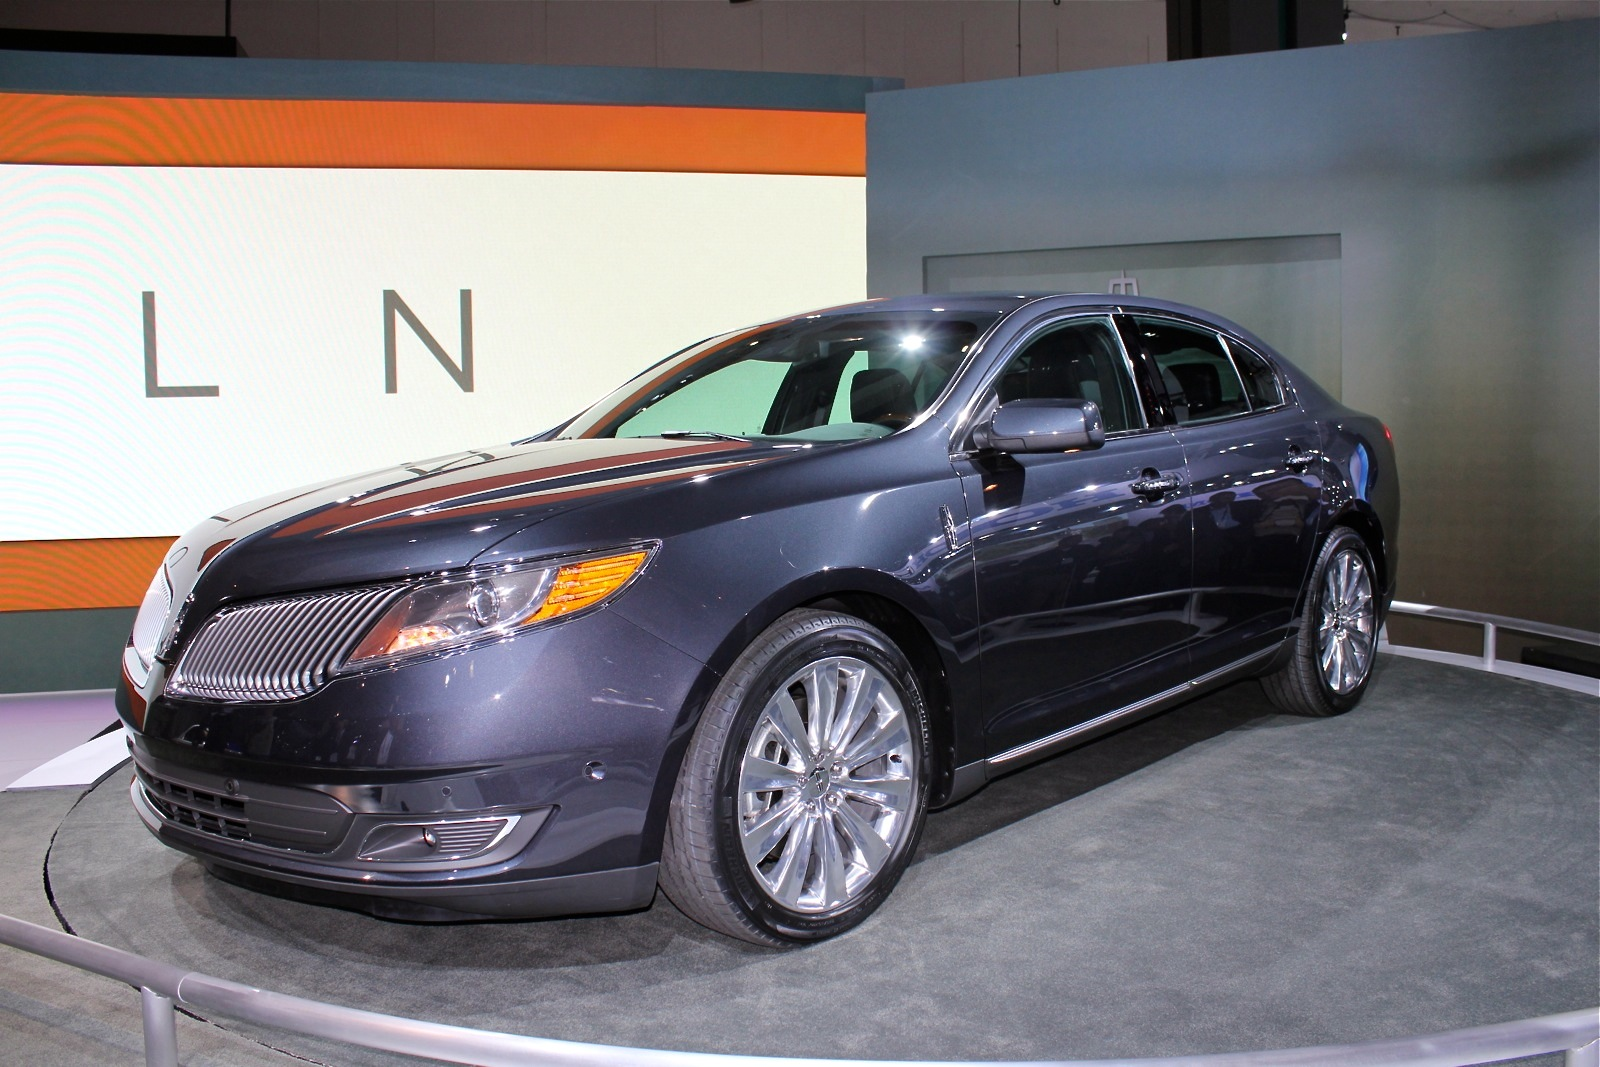 2013 Lincoln Mks Facelifted Full Size Luxury Sedan Bows